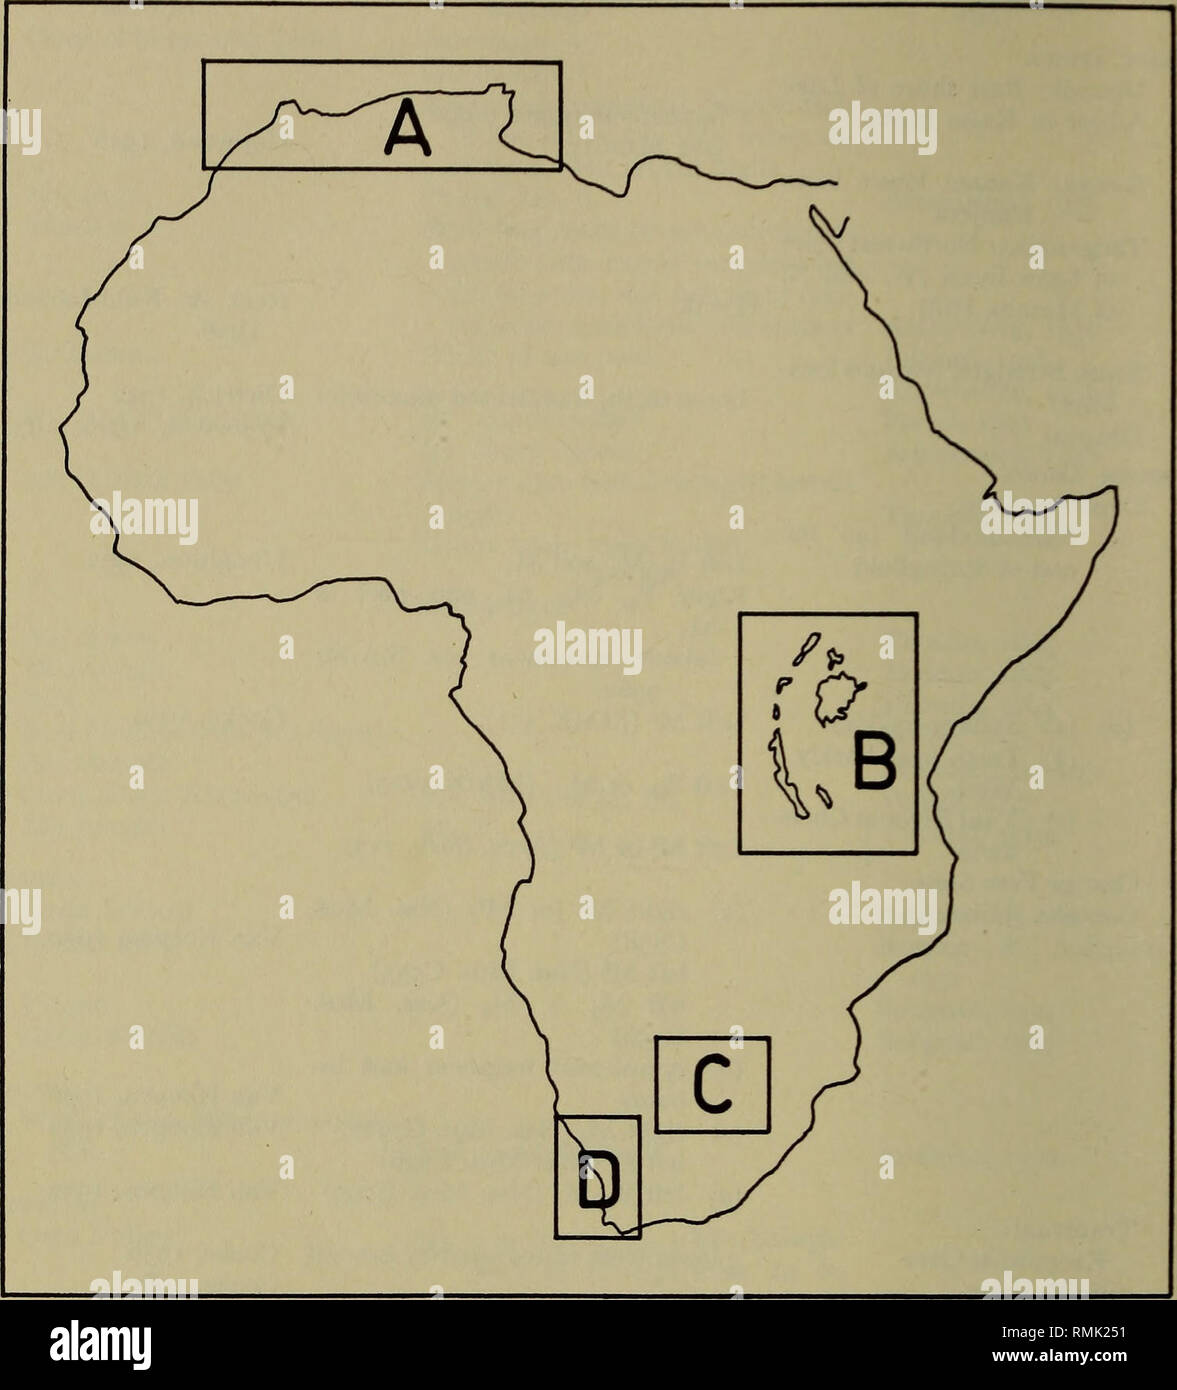 . Annals of the South African Museum. Annale van die Suid-Afrikaanse Museum. 284 ANNALS OF THE SOUTH AFRICAN MUSEUM. Fig. 3. Map of Africa indicating major areas of discovery of hipparionids. Details of areas A-G are shown in figs. 4-6, while area D is enlarged in fig. 1. Algeria—figs. 3, 4) occur between two marine horizons, namely, (1) a Burdi- galian one, characterized by its mollusc and echinid fauna and (2) an Upper Miocene Lithotamnium limestone. On this stratigraphical basis, the Hipparion horizon has been dated as Tortonian, i.e. Upper Vindobonian (Late Miocene) immediately antedating  - Stock Image